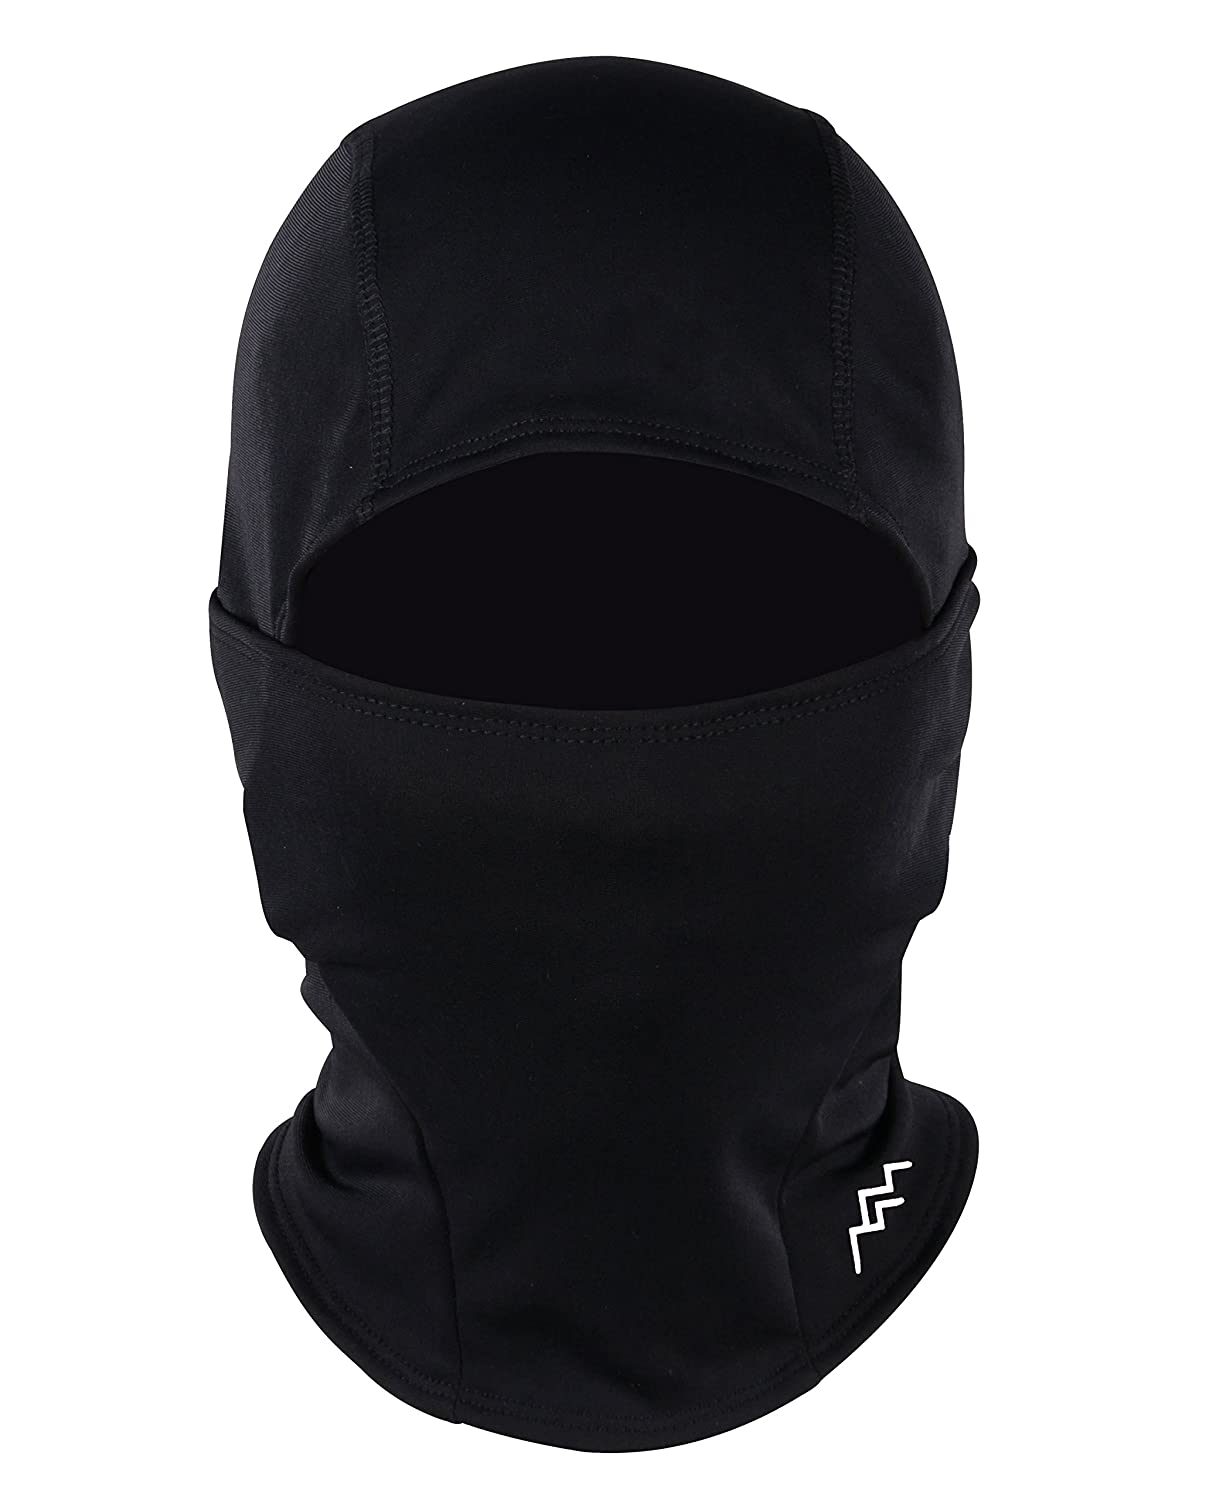 Trailside Supply Co. Windproof Ski Mask Cold Weather Face Mask Motorcycle Balaclava Hood